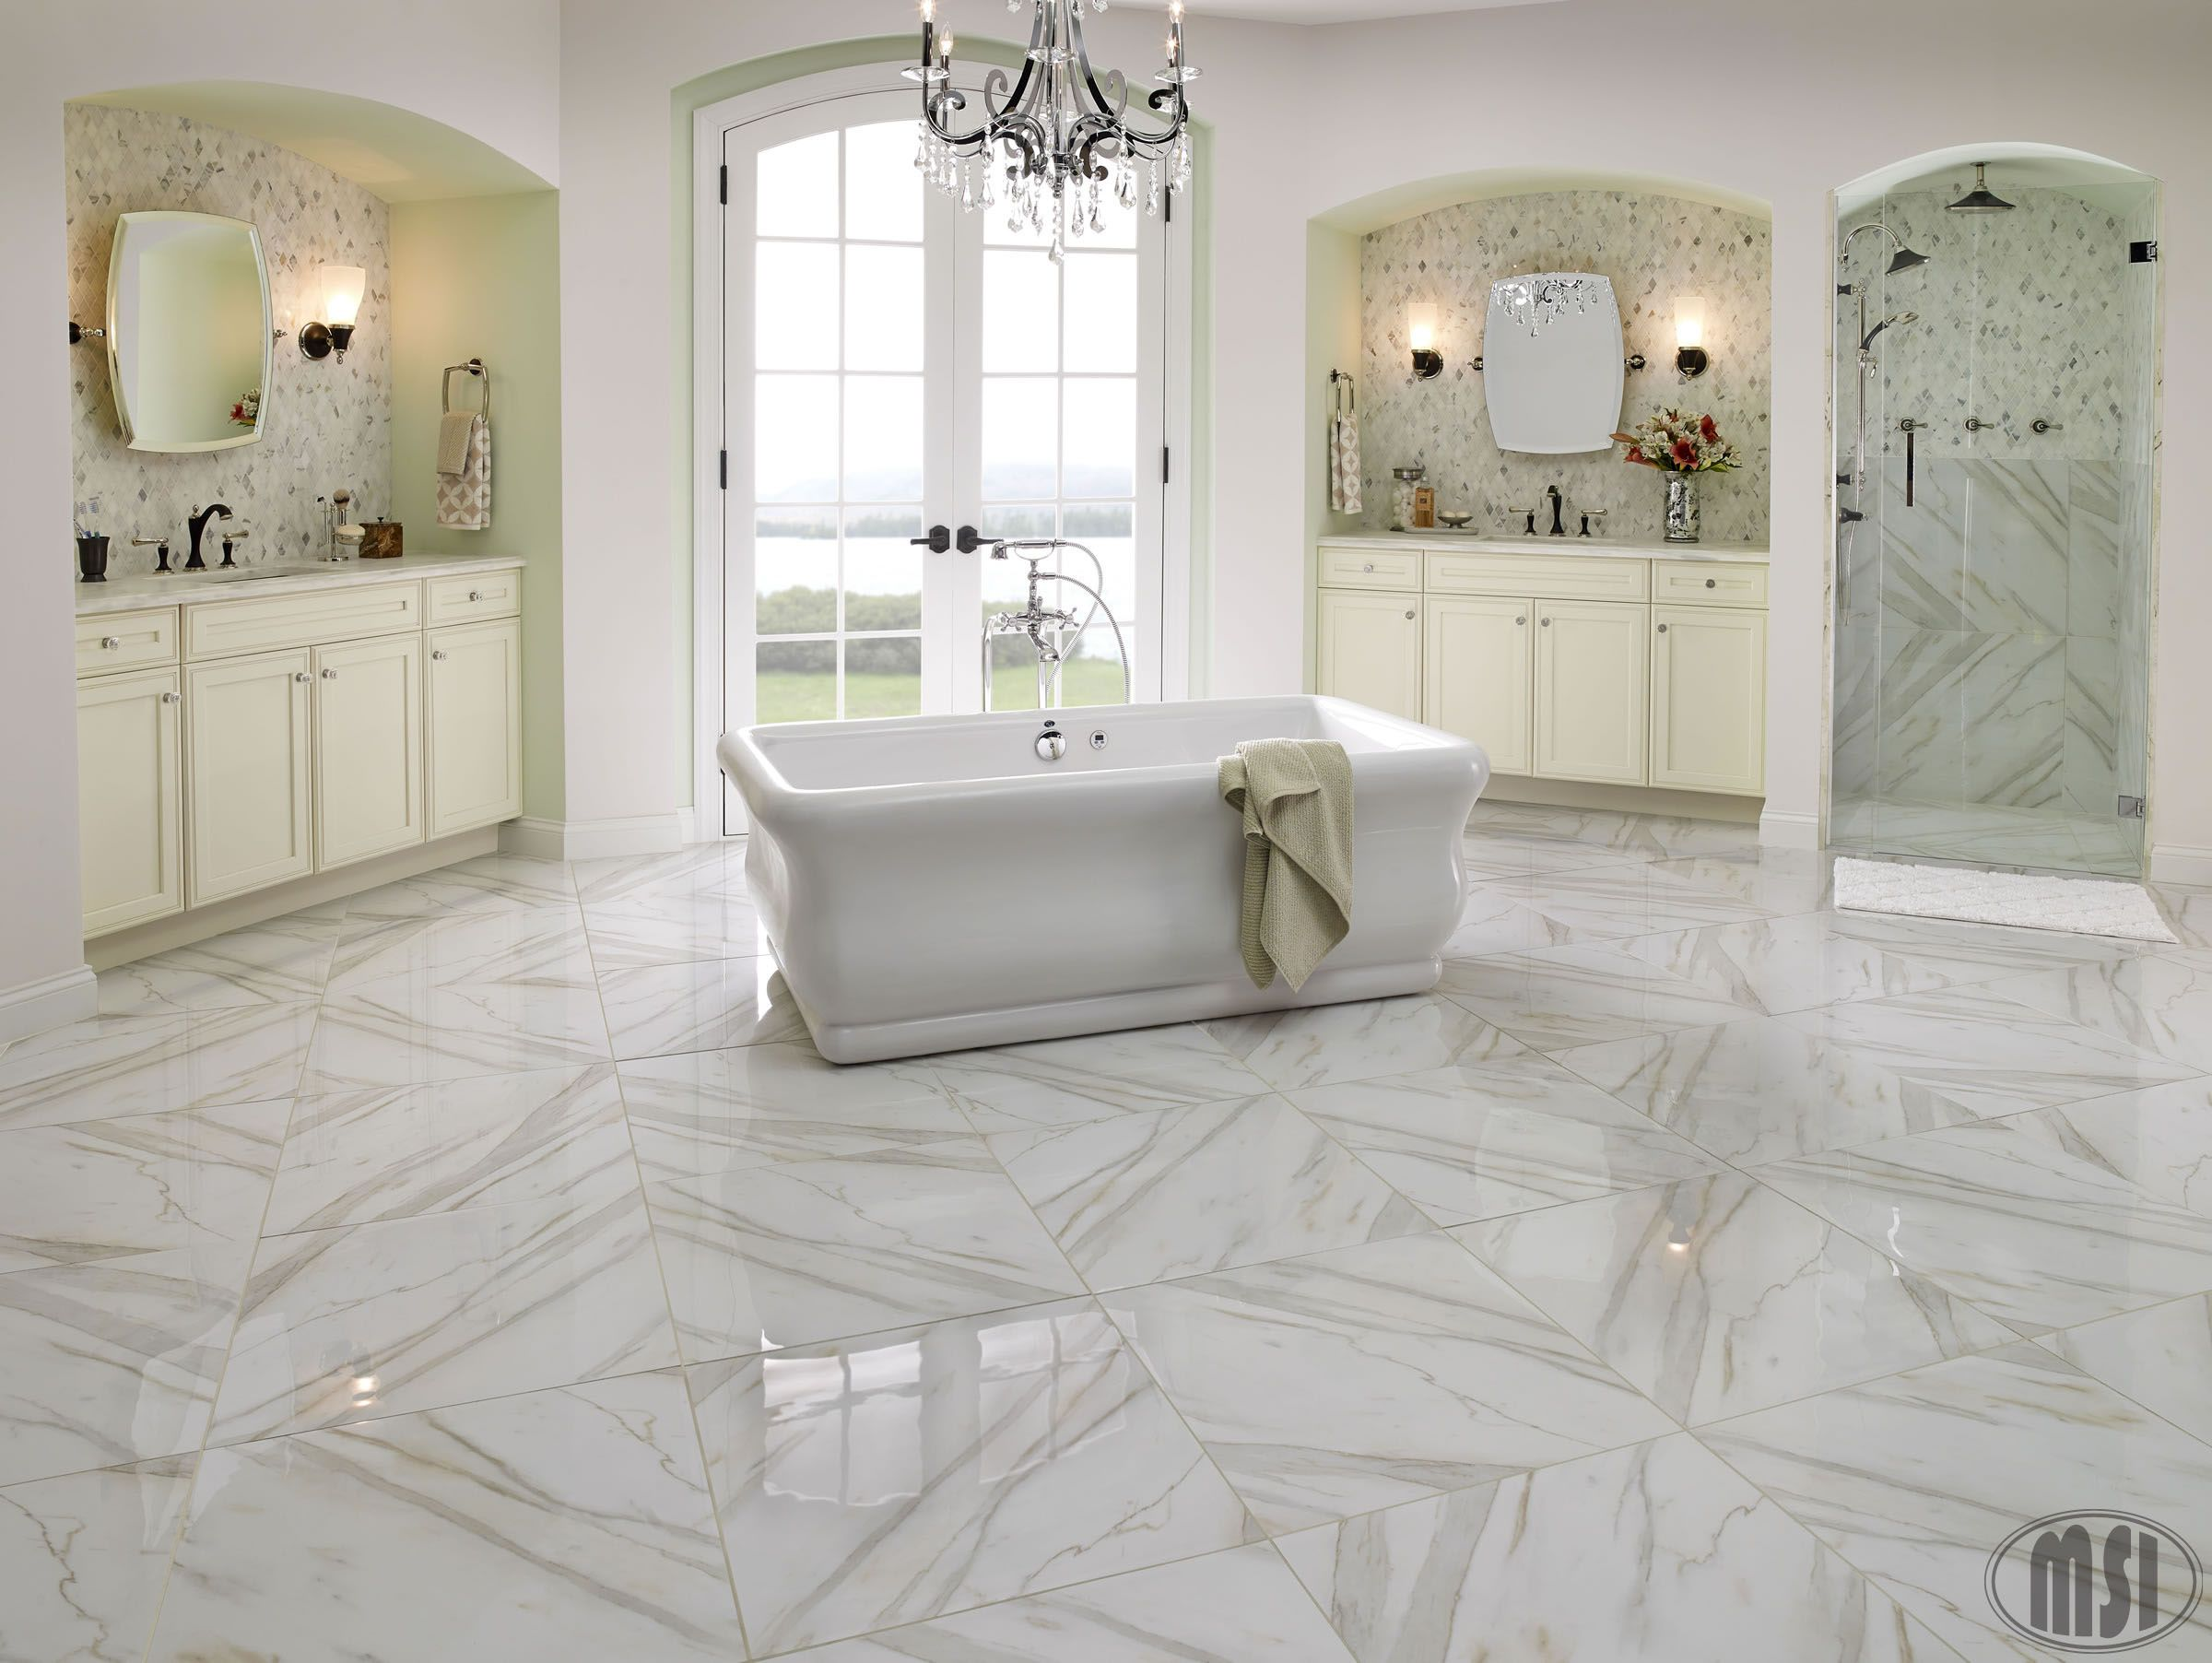 Porcelain pietra calacatta 24x24 stunning luxurious bathrooms porcelain pietra calacatta 24x24 stunning dailygadgetfo Image collections